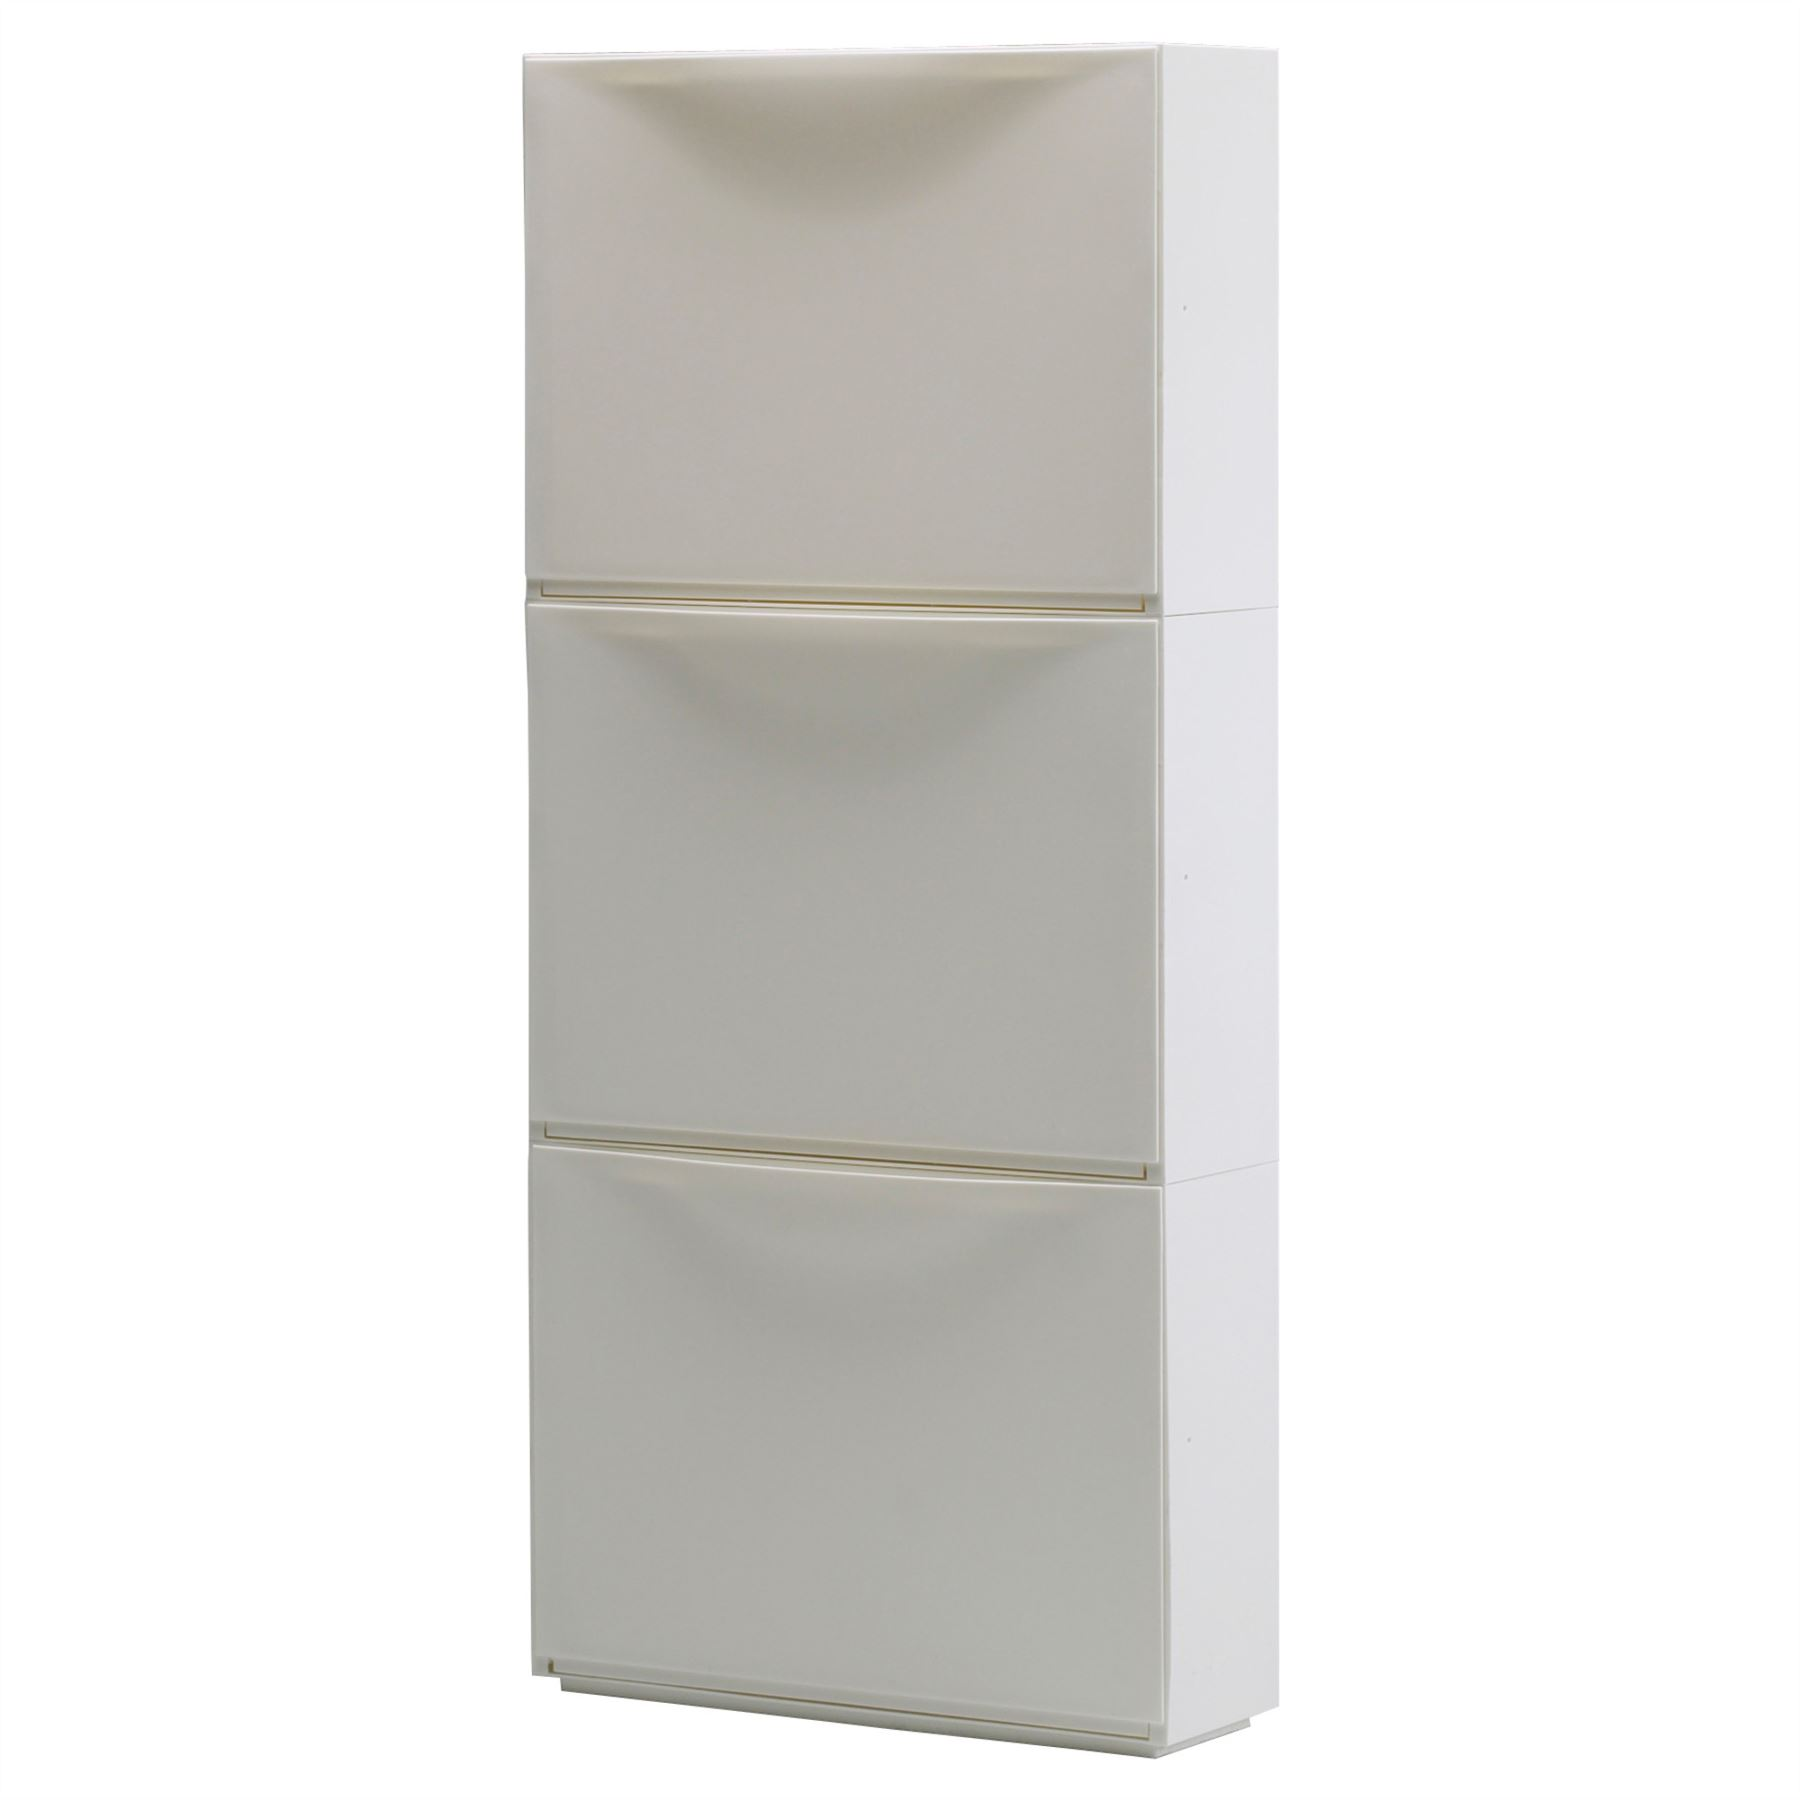 Ikea trones shoe storage cabinet 3 pack white new ebay for Mueble zapatero amazon